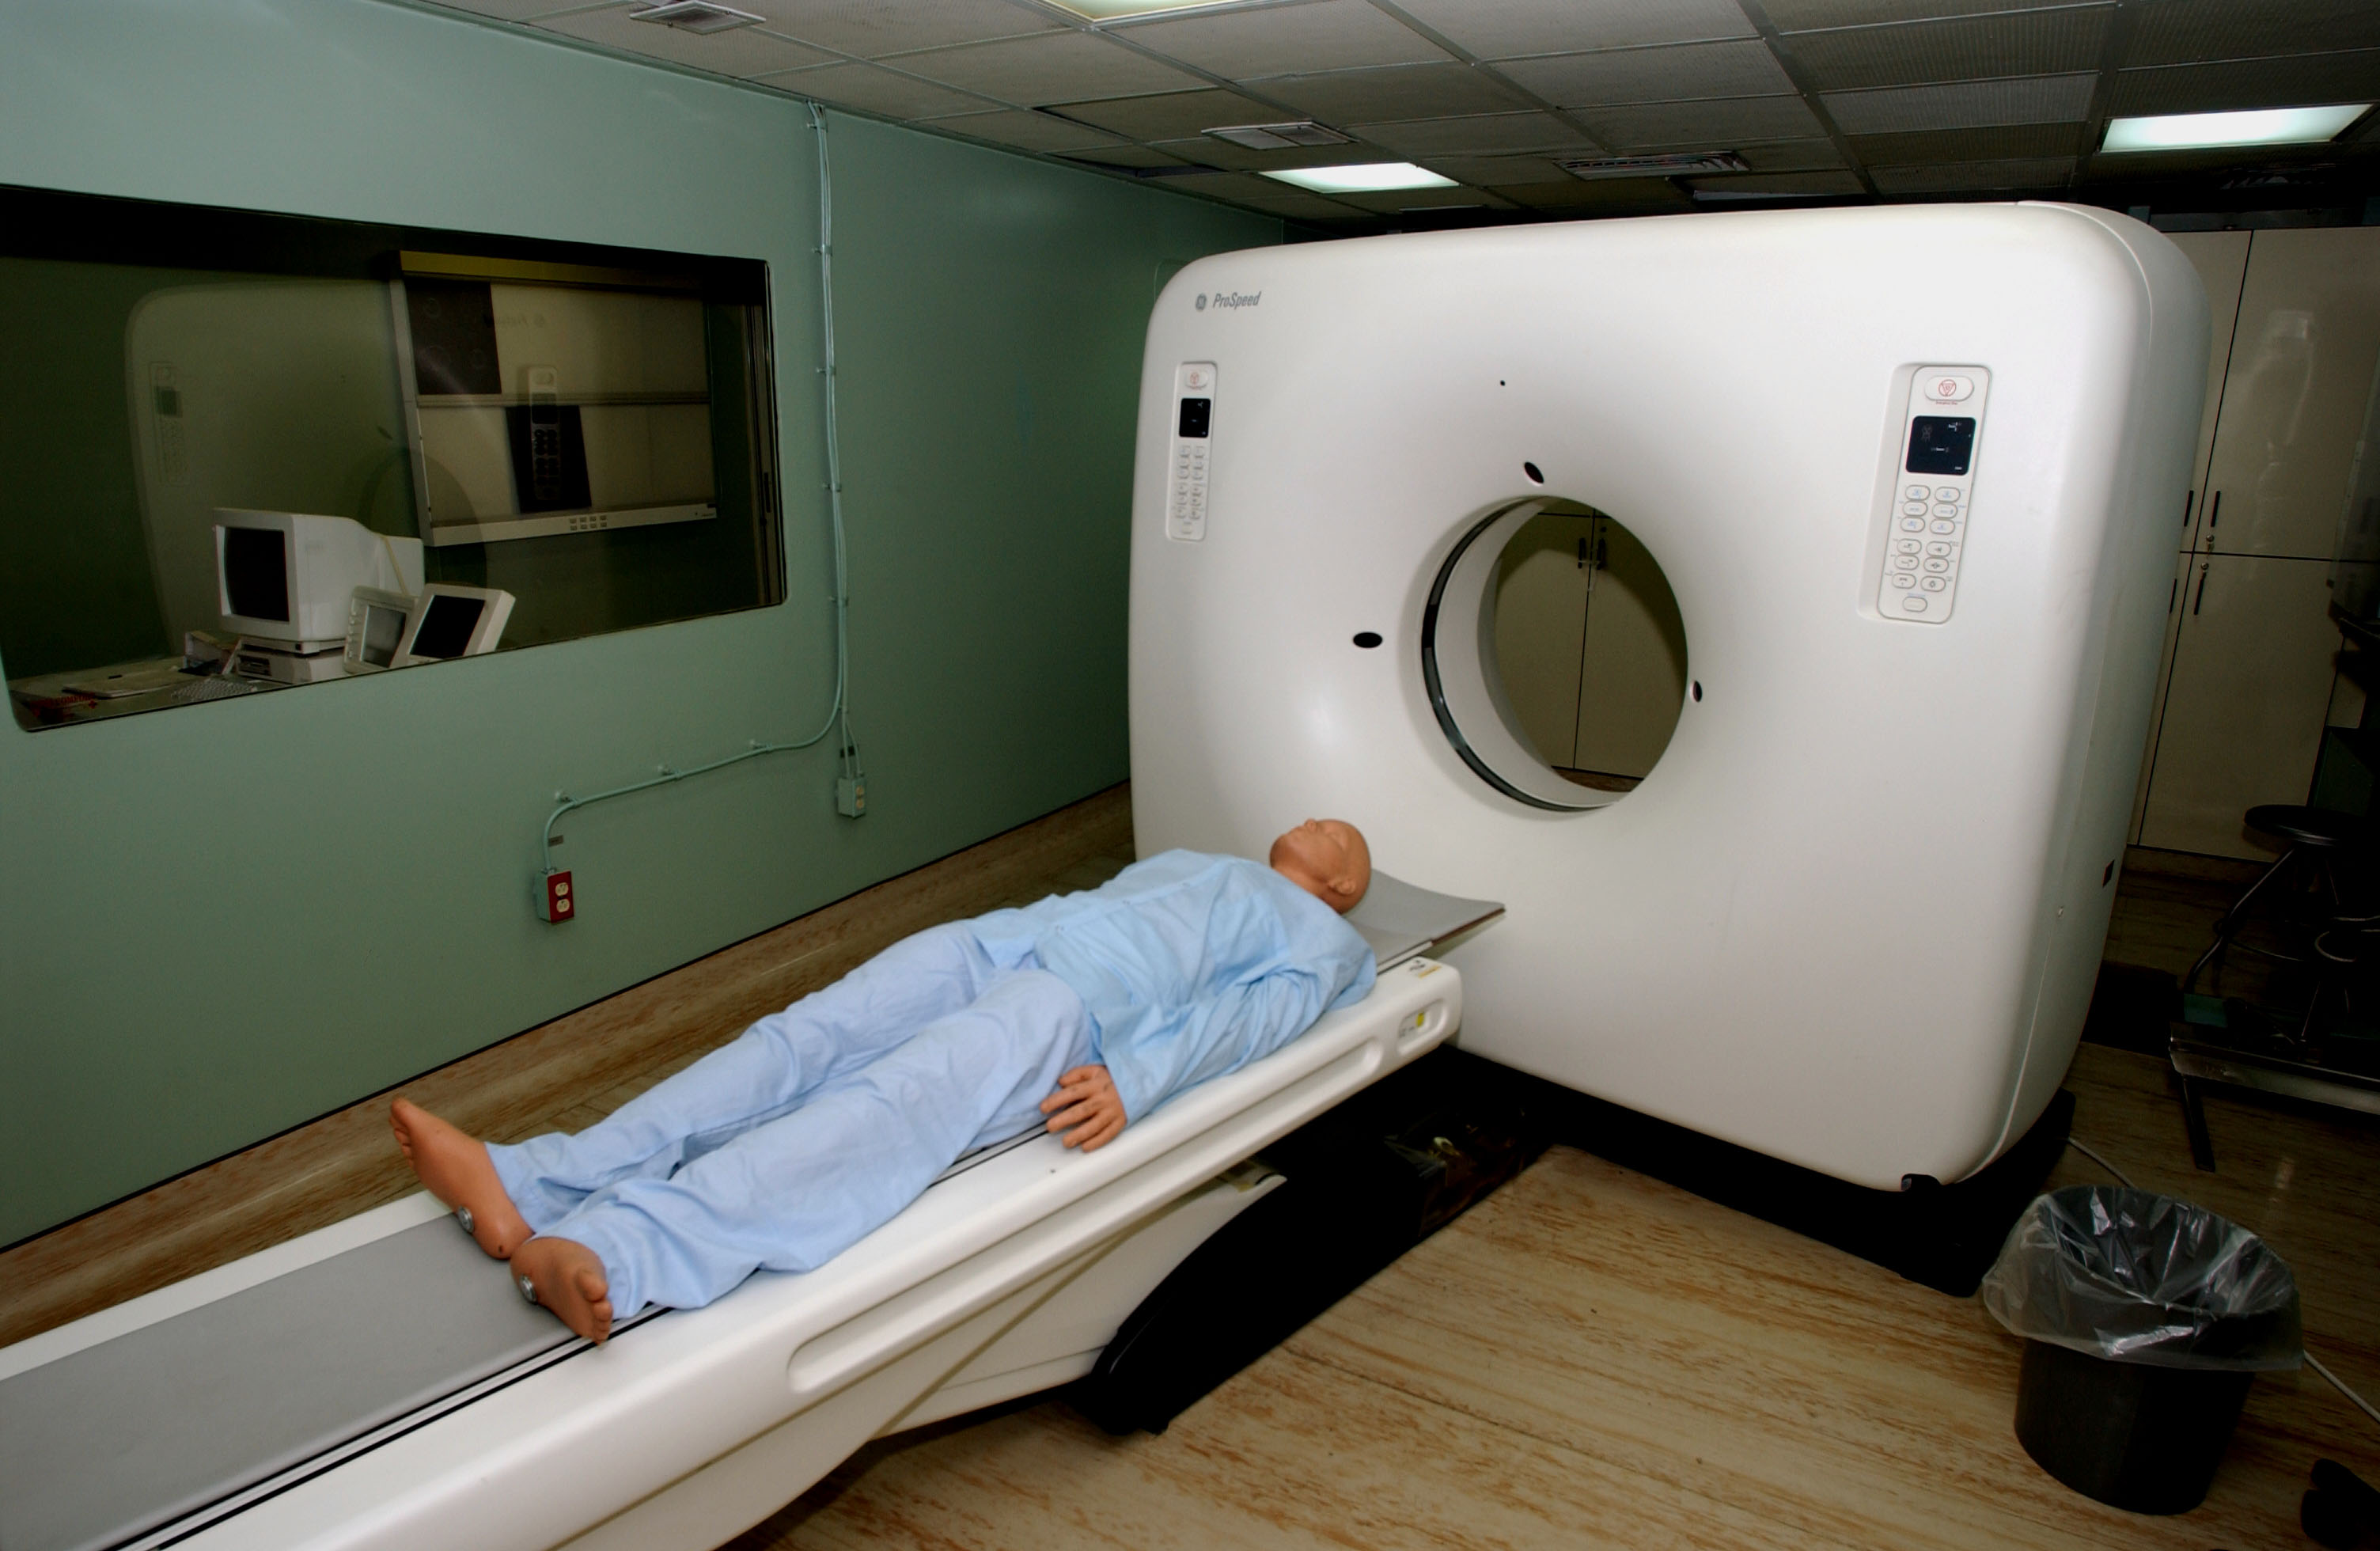 What does an mri machine look like